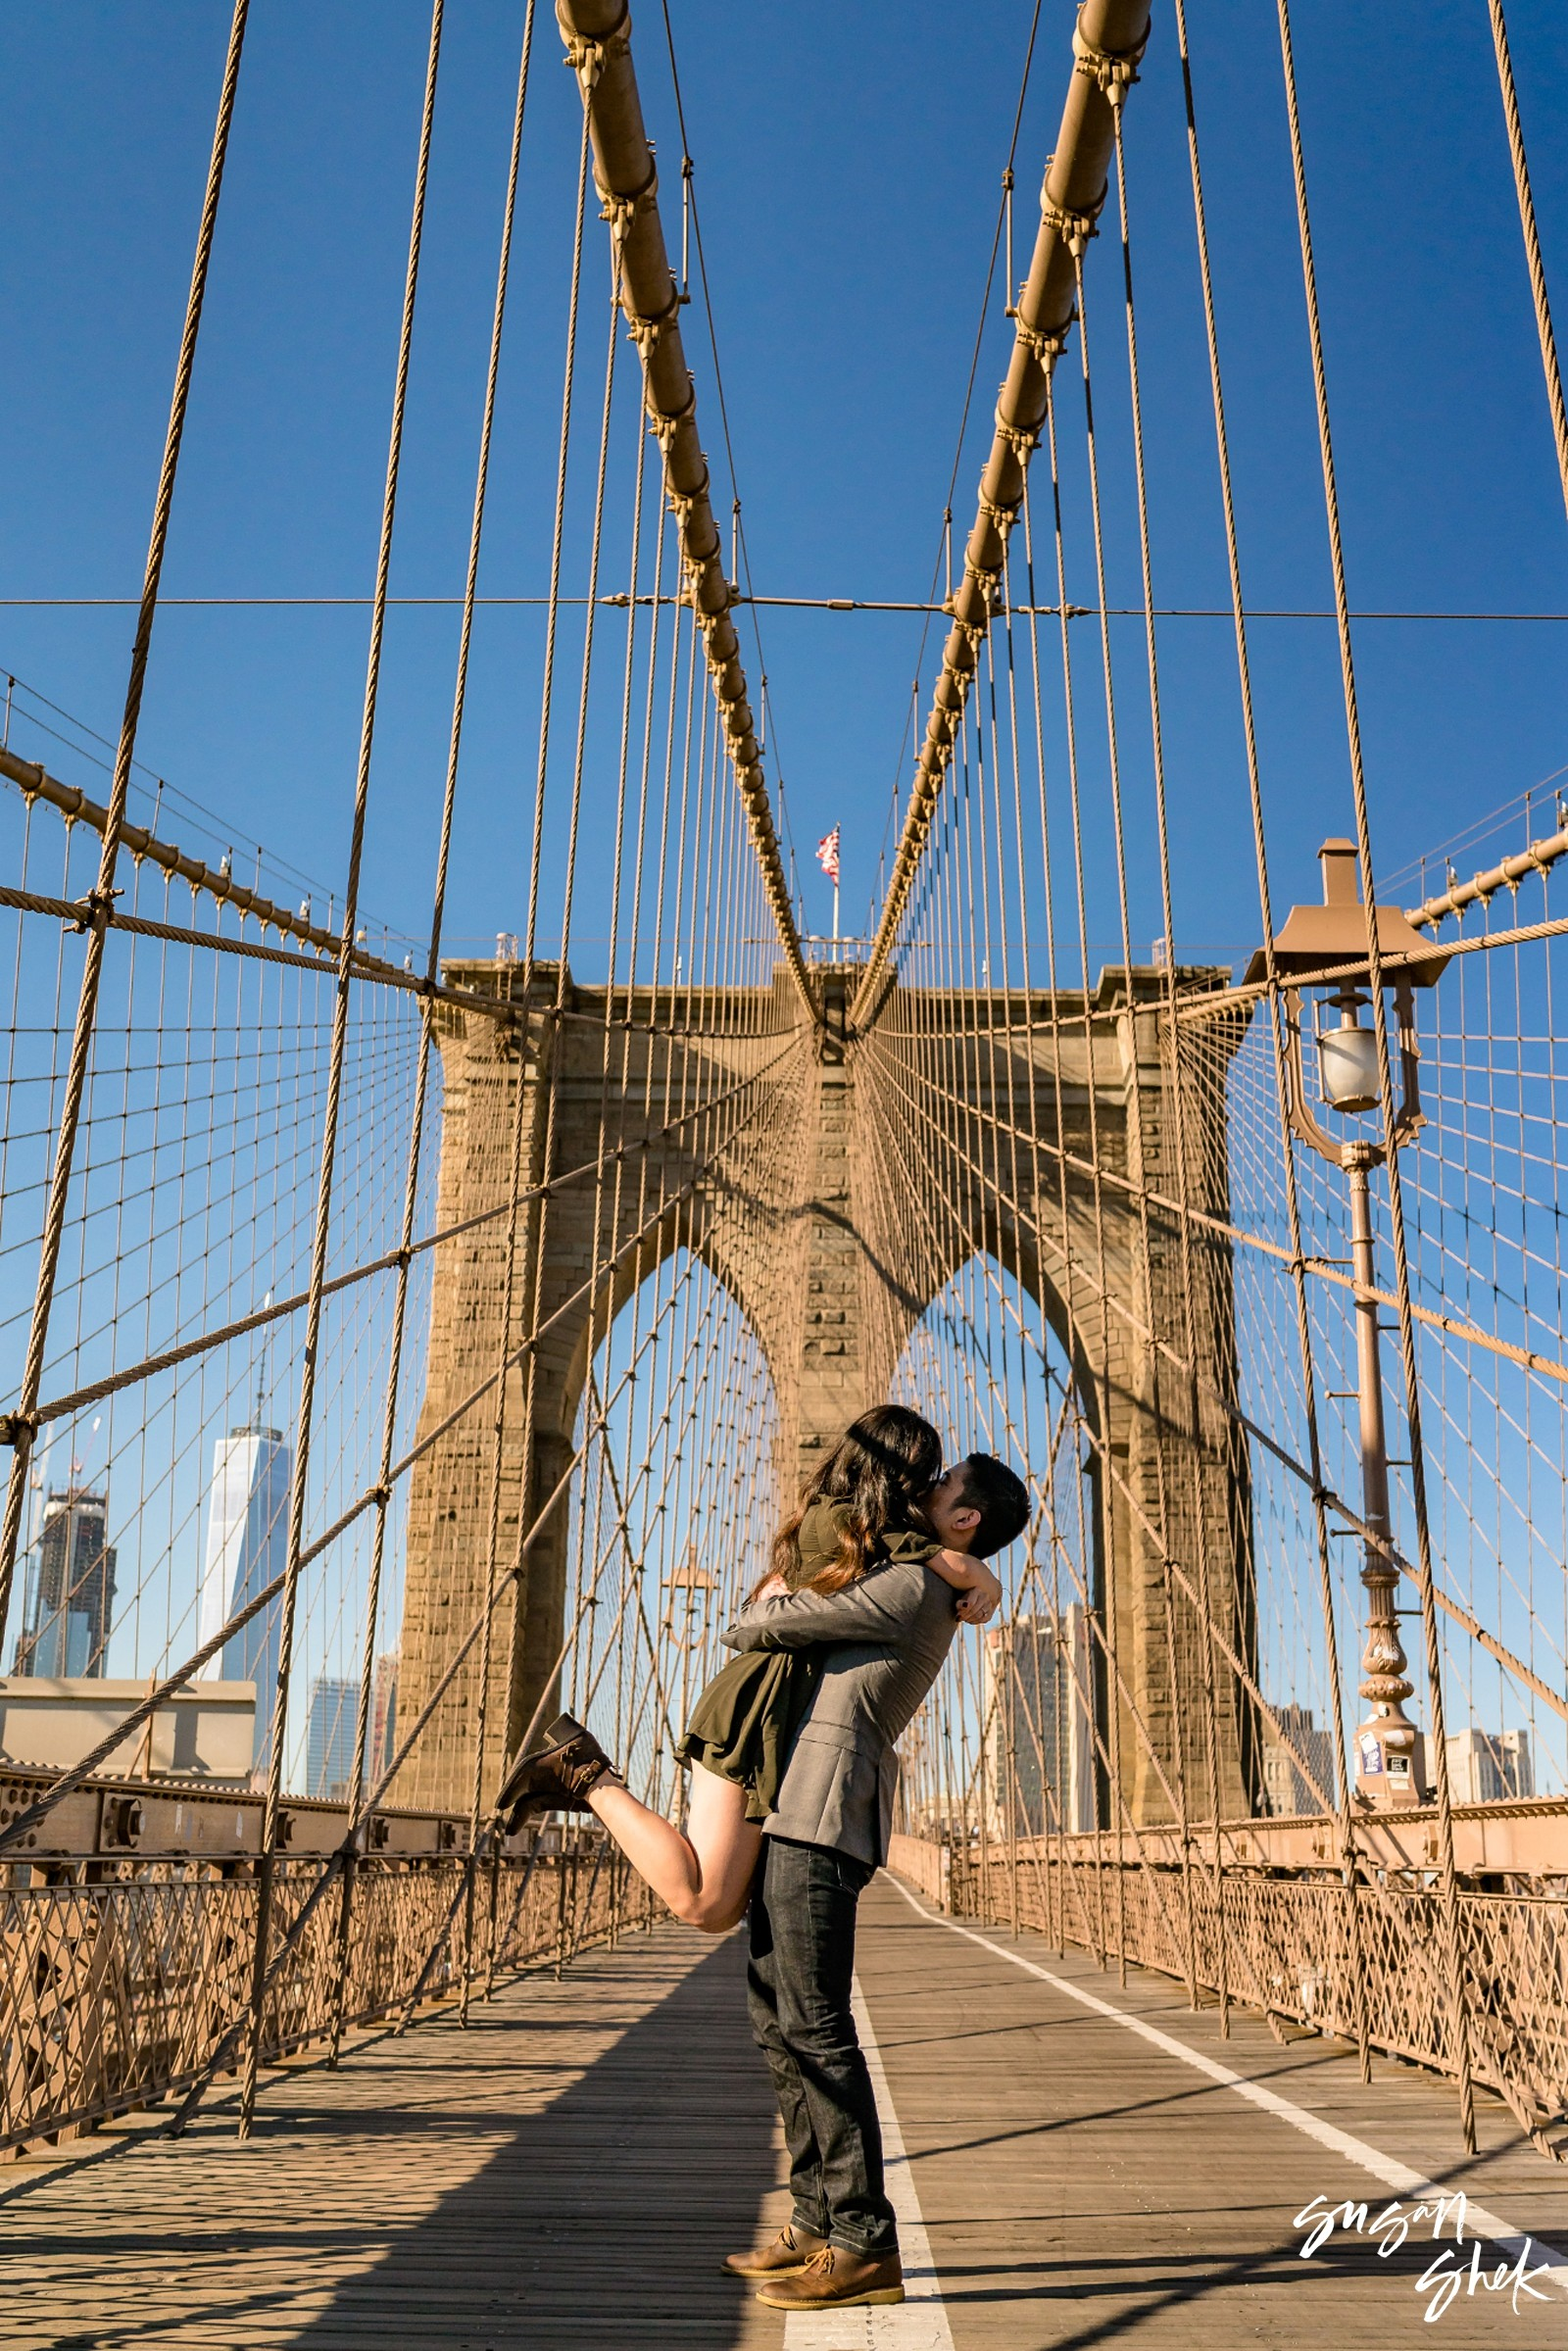 brooklyn bridge Engagement Shoot, NYC Engagement Photographer, Engagement Session, Engagement Photography, Engagement Photographer, NYC Wedding Photographer